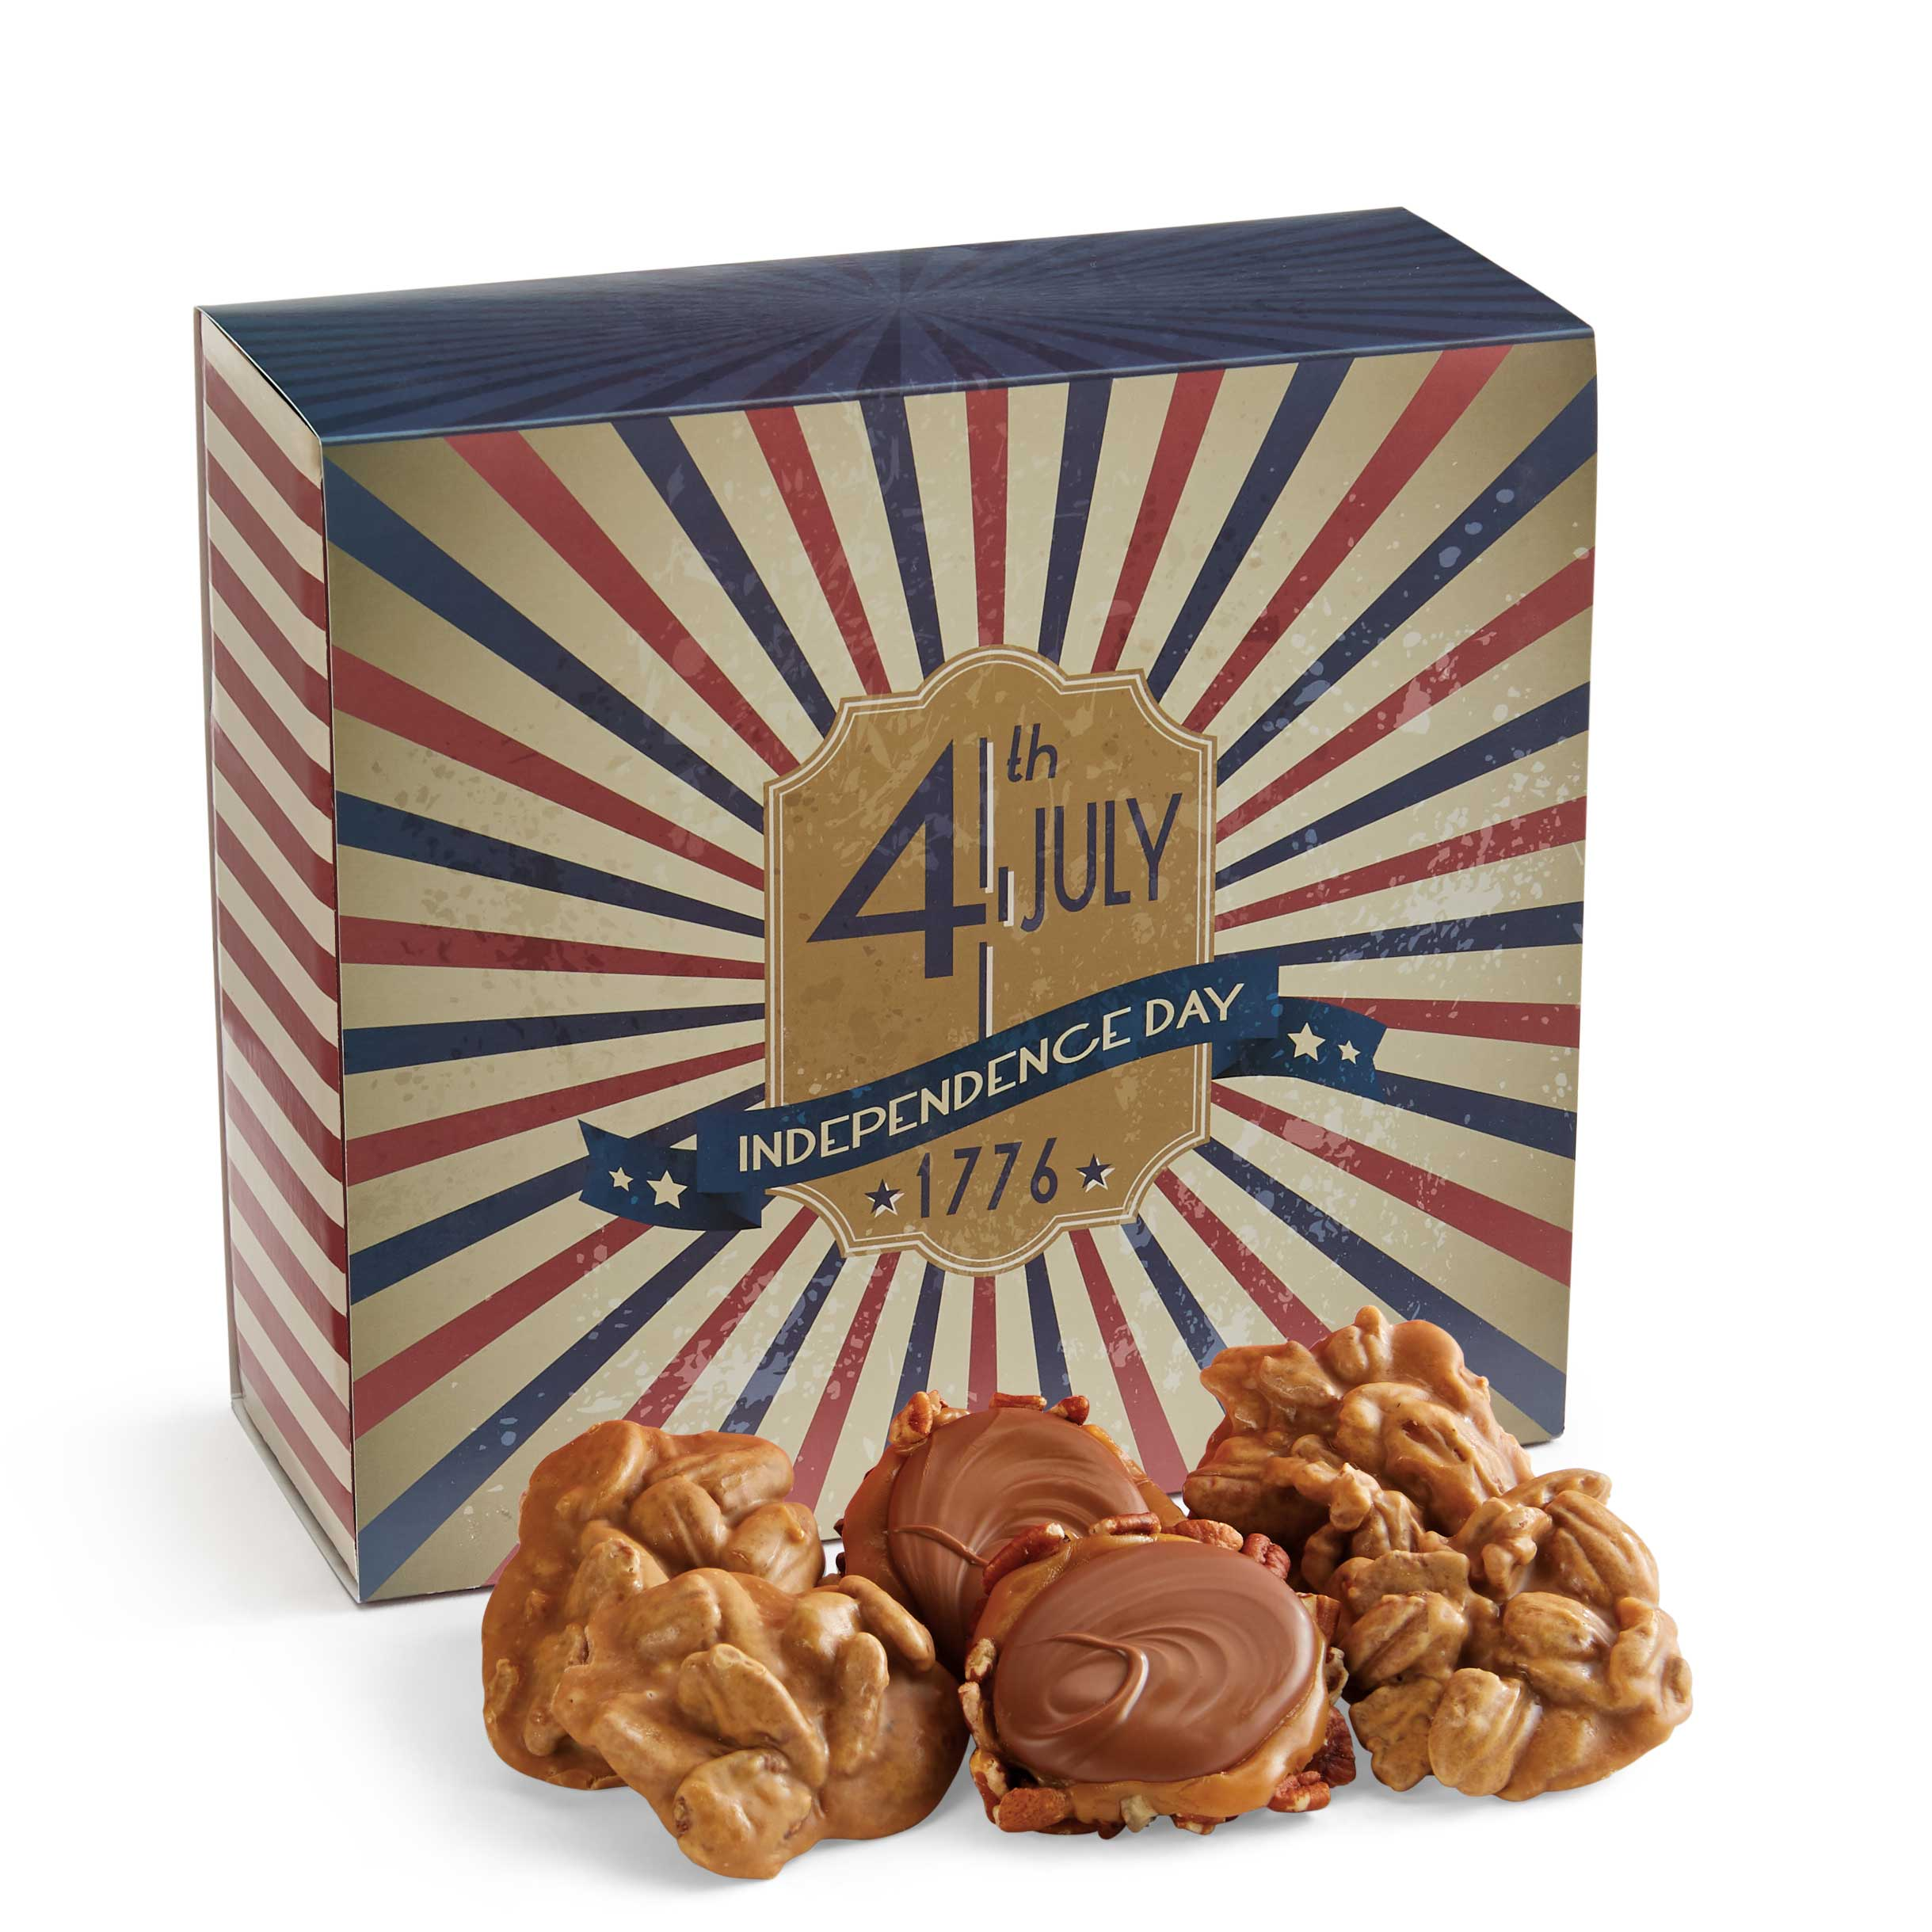 24 Piece Praline & Turtle Gopher Duo in the 4th of July Gift Box